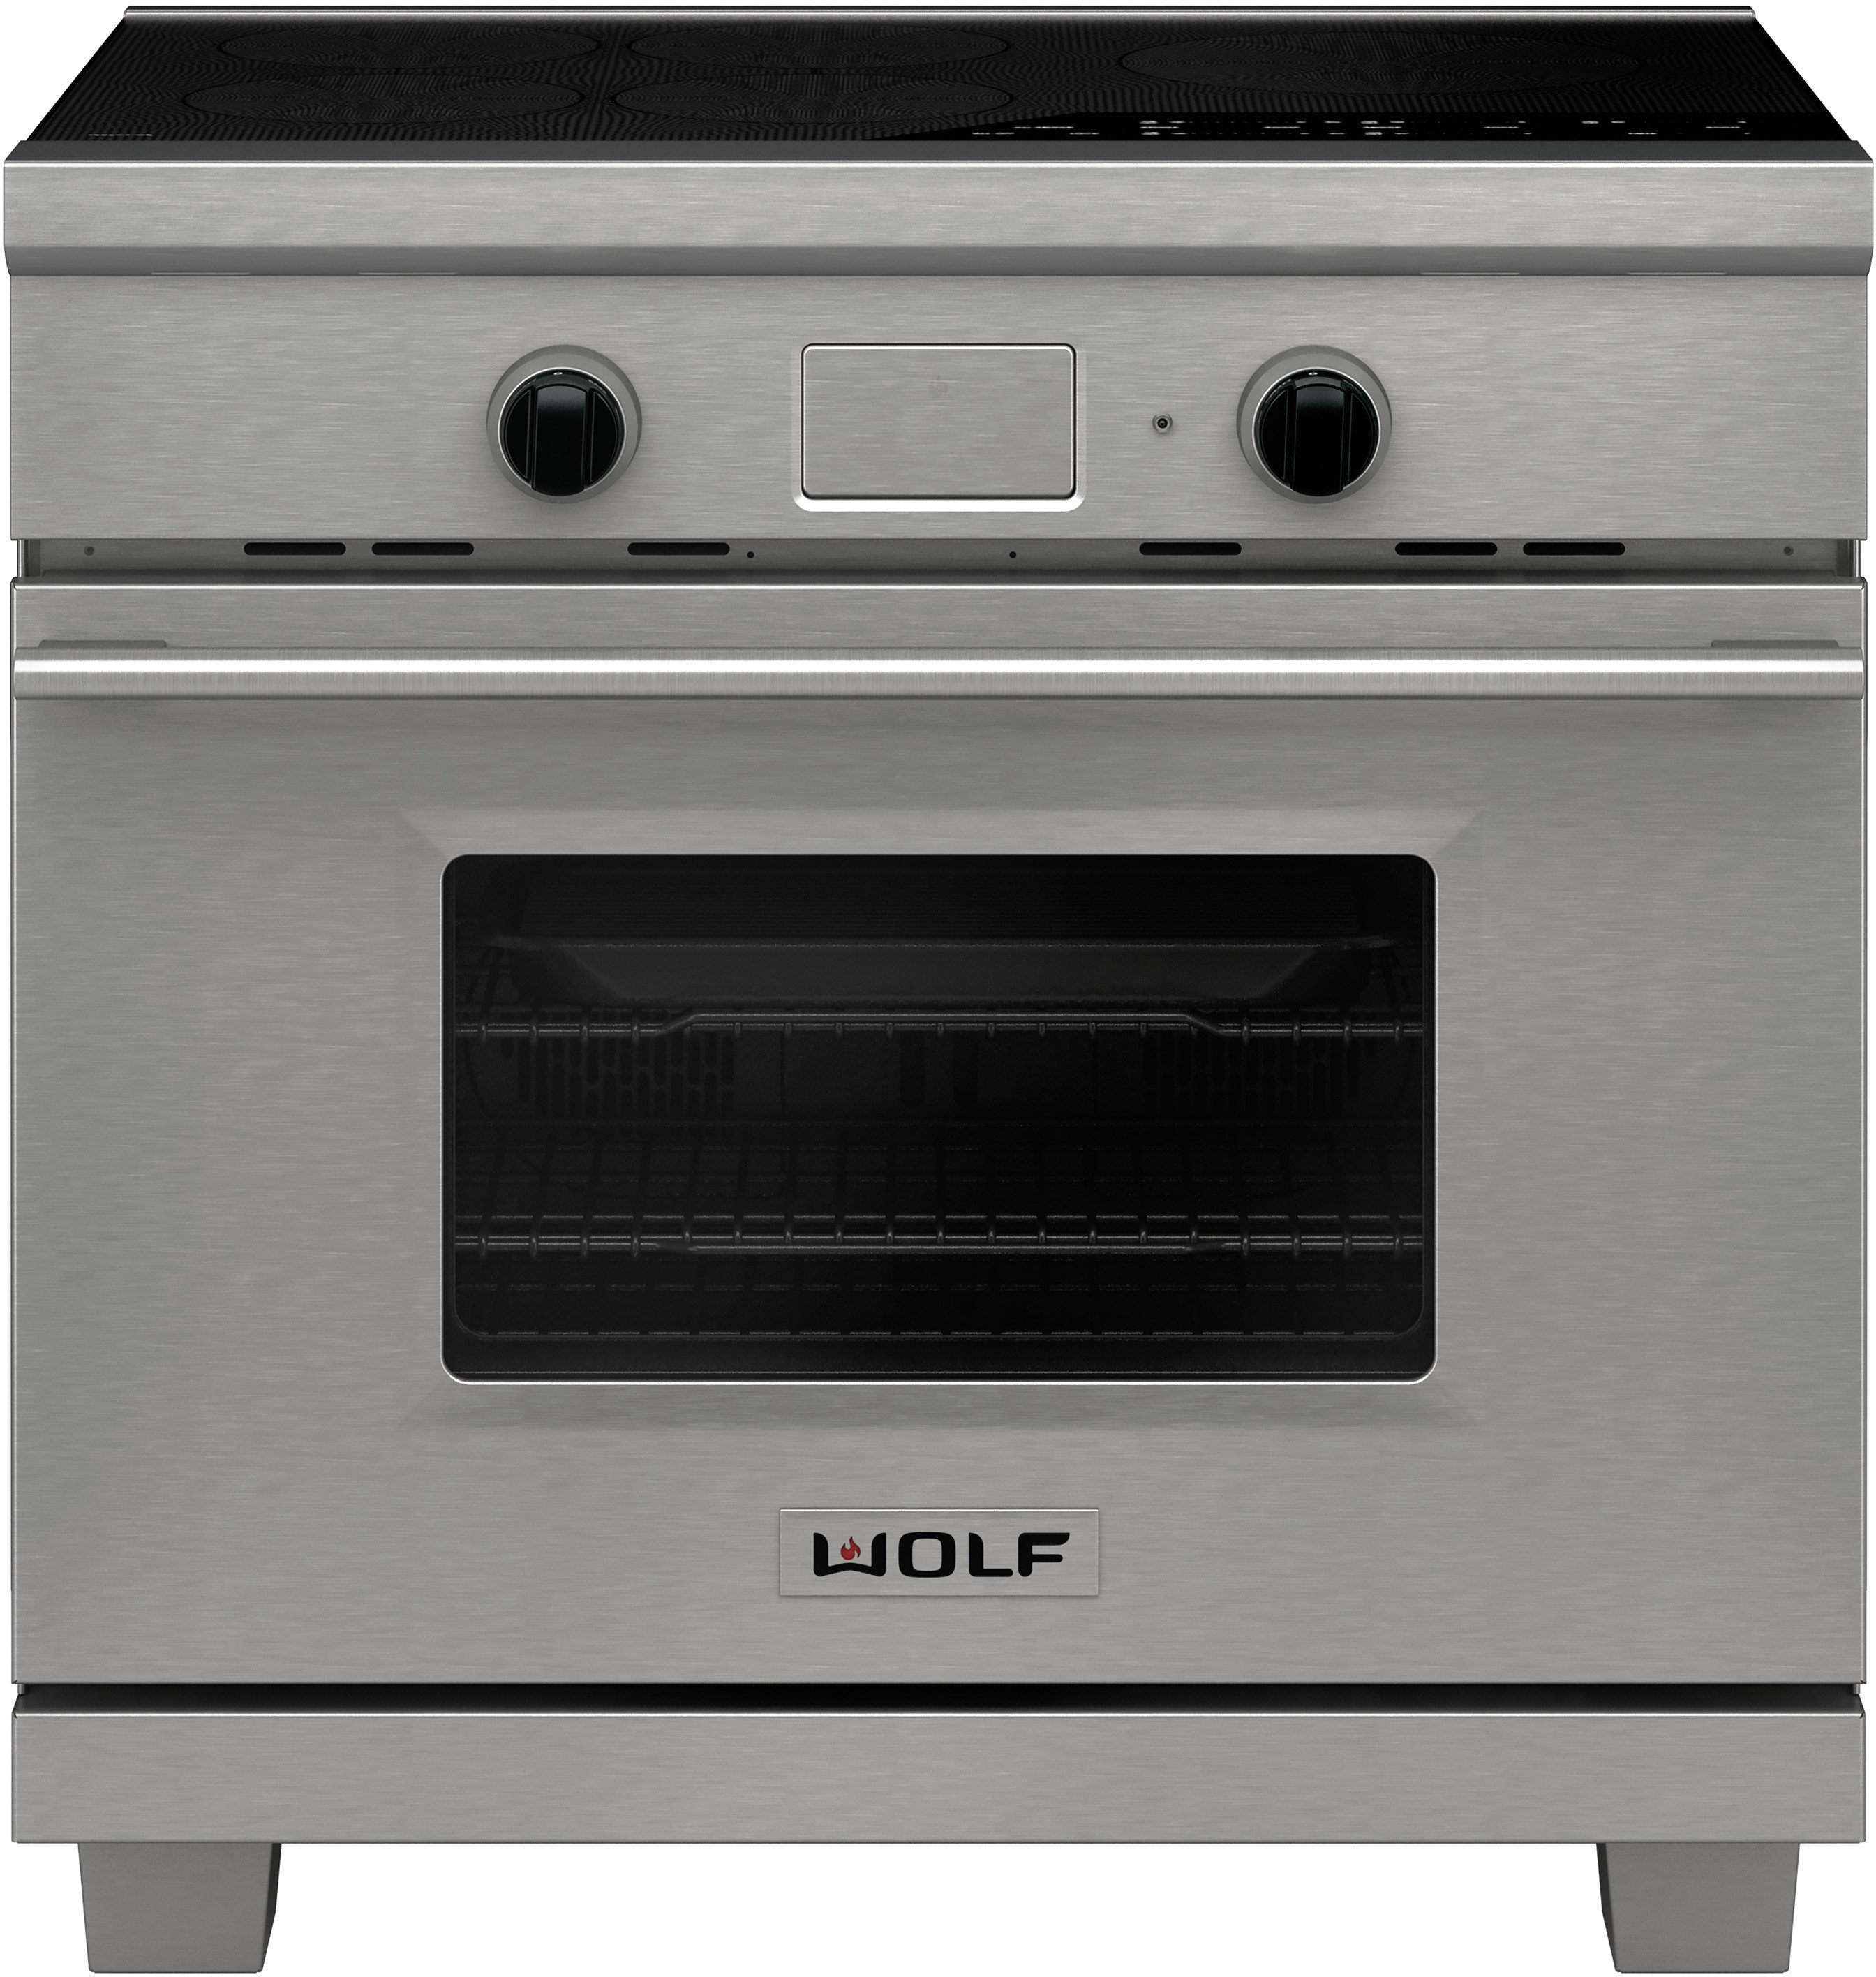 Wolf Ir365testh 36 Inch Induction Range With 5 3 Cu Ft